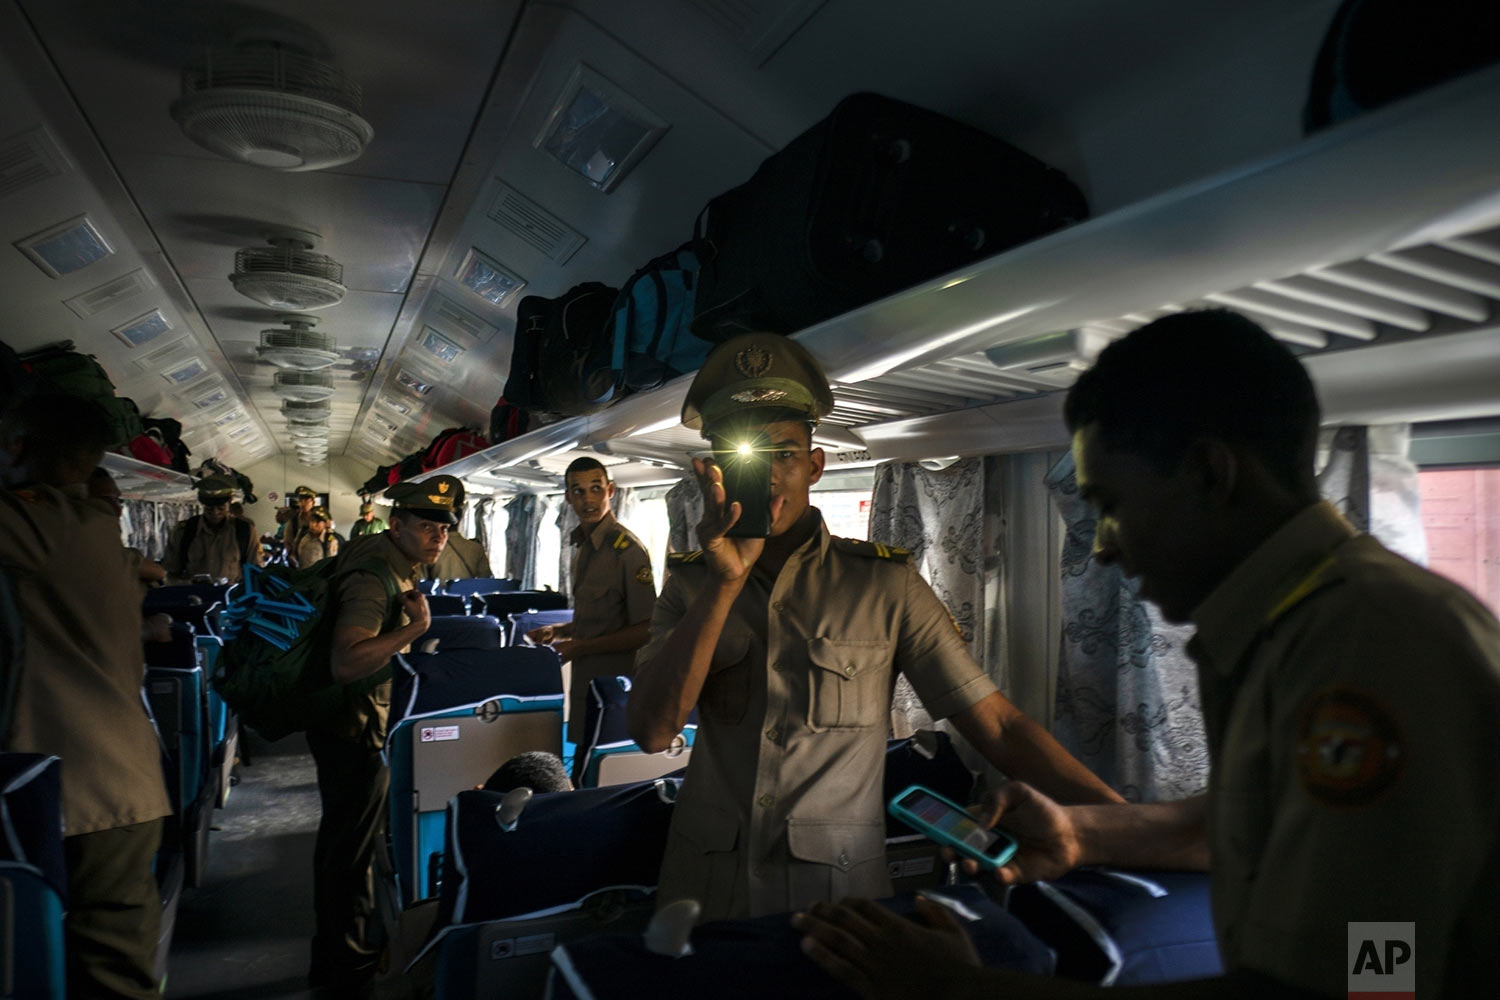 Cuban cadets board the first train using new equipment from China, in Havana, Cuba, Saturday, July 13, 2019. The first train using new equipment from China pulled out of Havana Saturday, hauling passengers on the start of a 915-kilometer (516-mile) journey to the eastern end of the island as the government tries to overhaul the country's aging and decrepit rail system. (AP Photo/Ramon Espinosa)